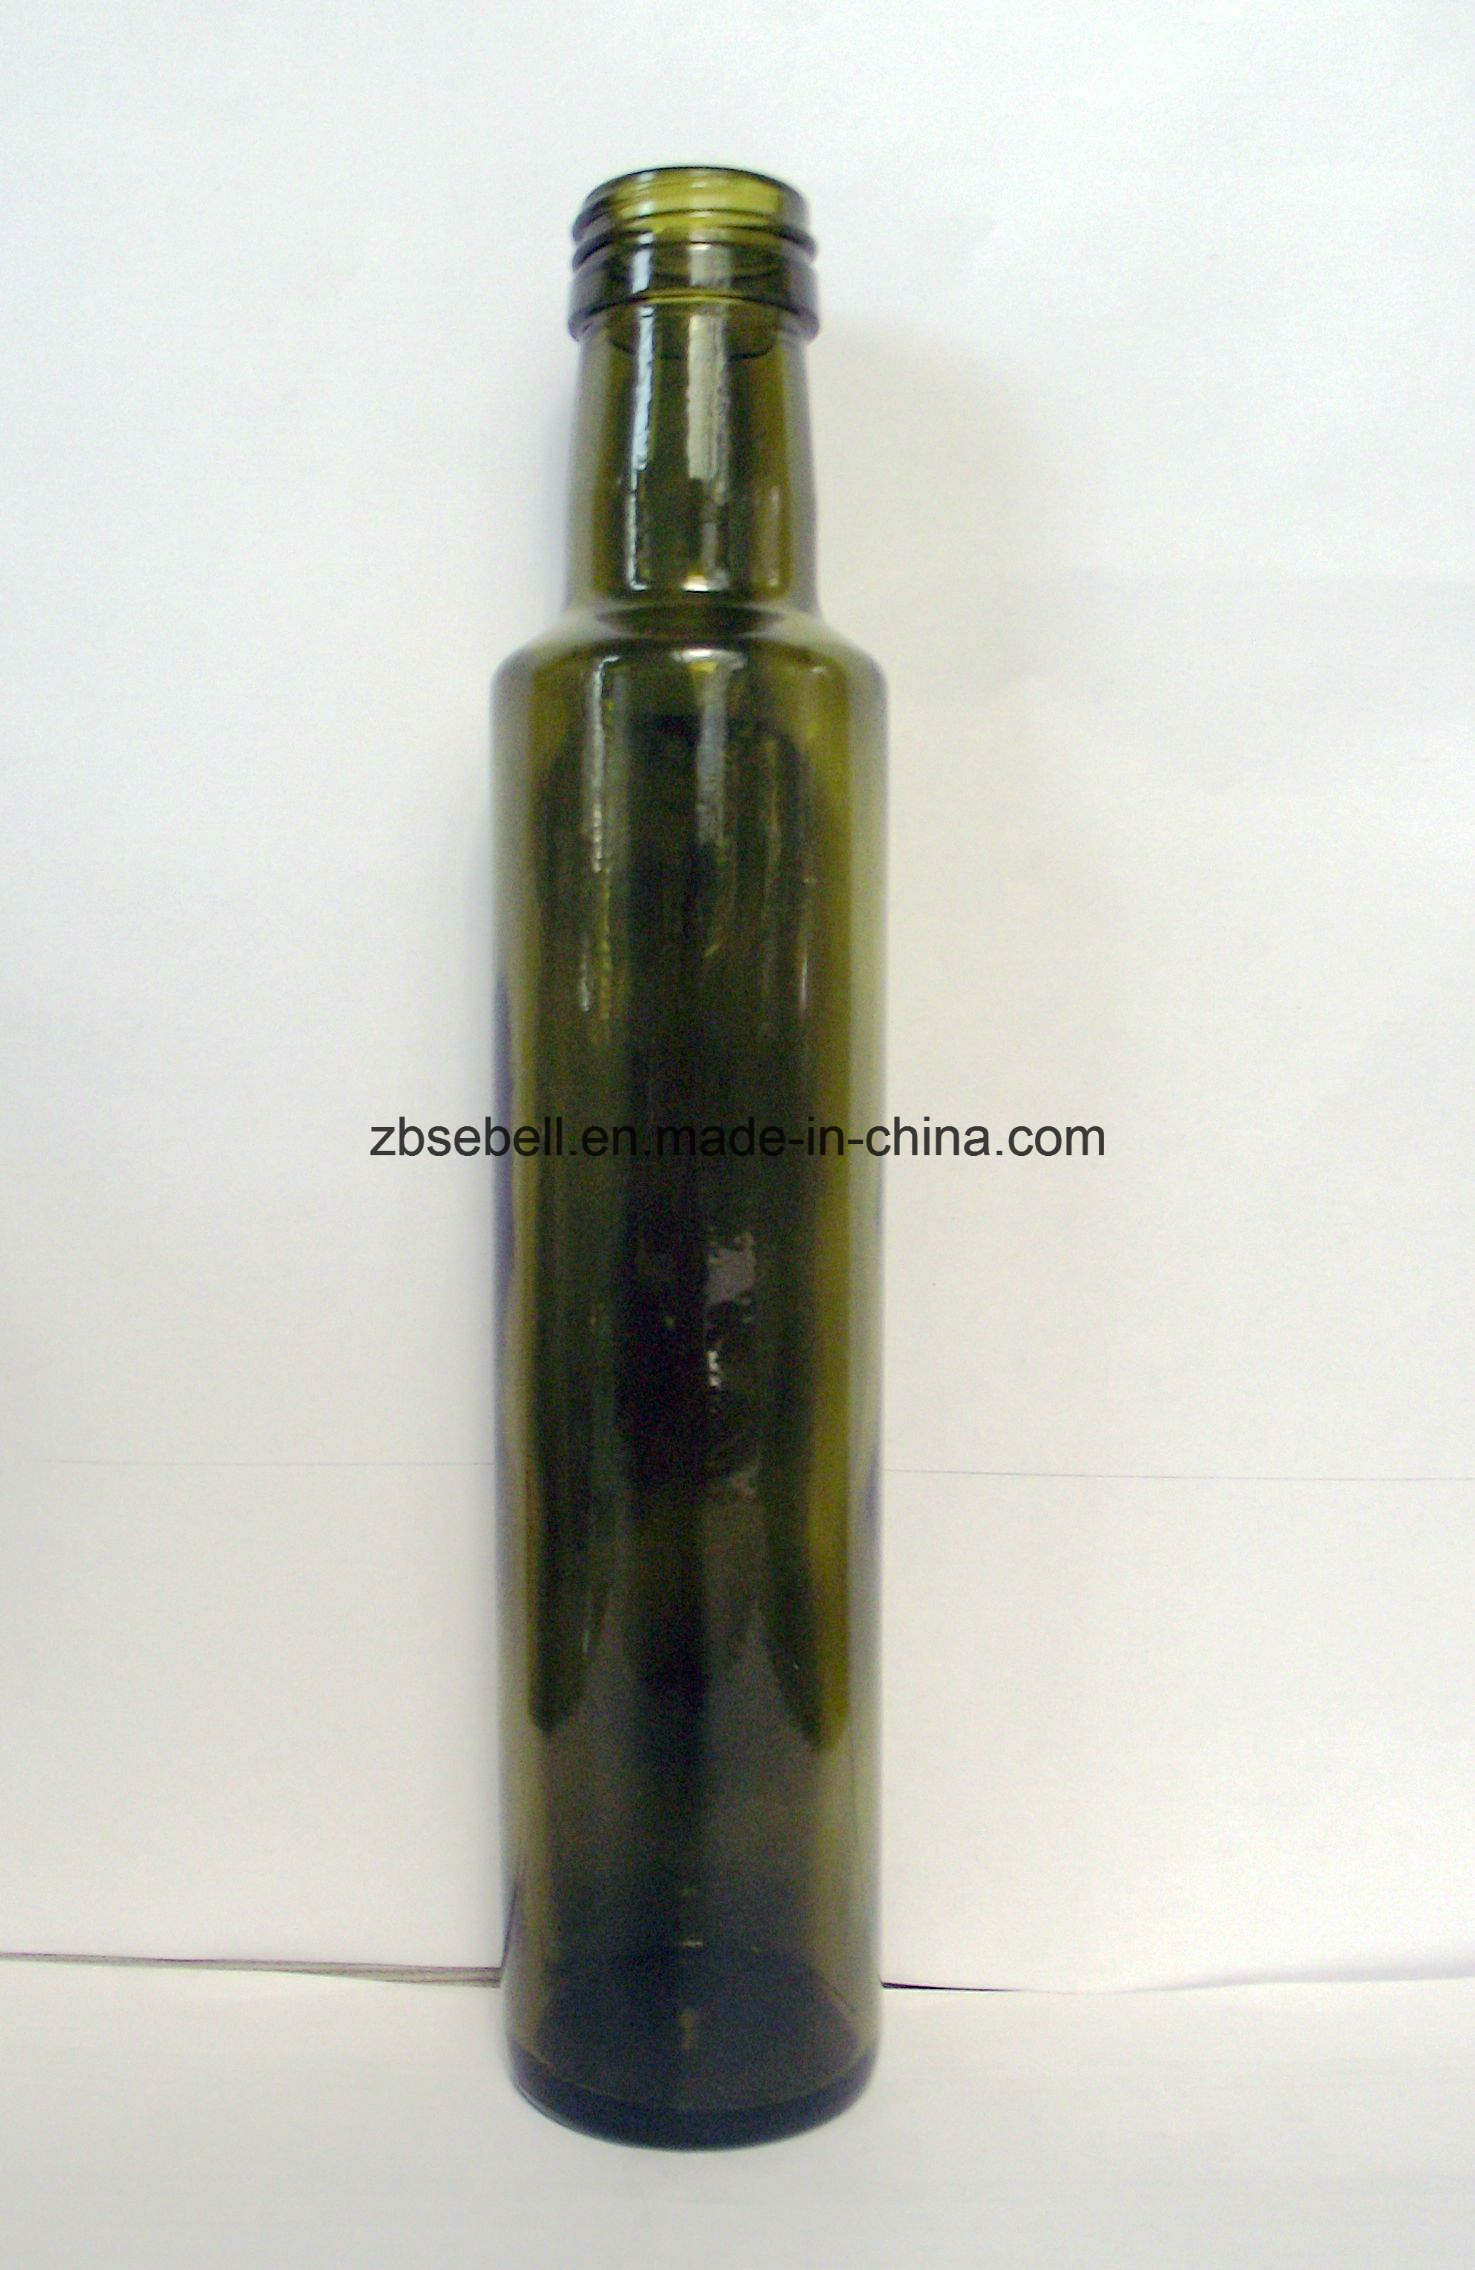 250ml Dark Green Dorica Glass Olive Oil Bottle